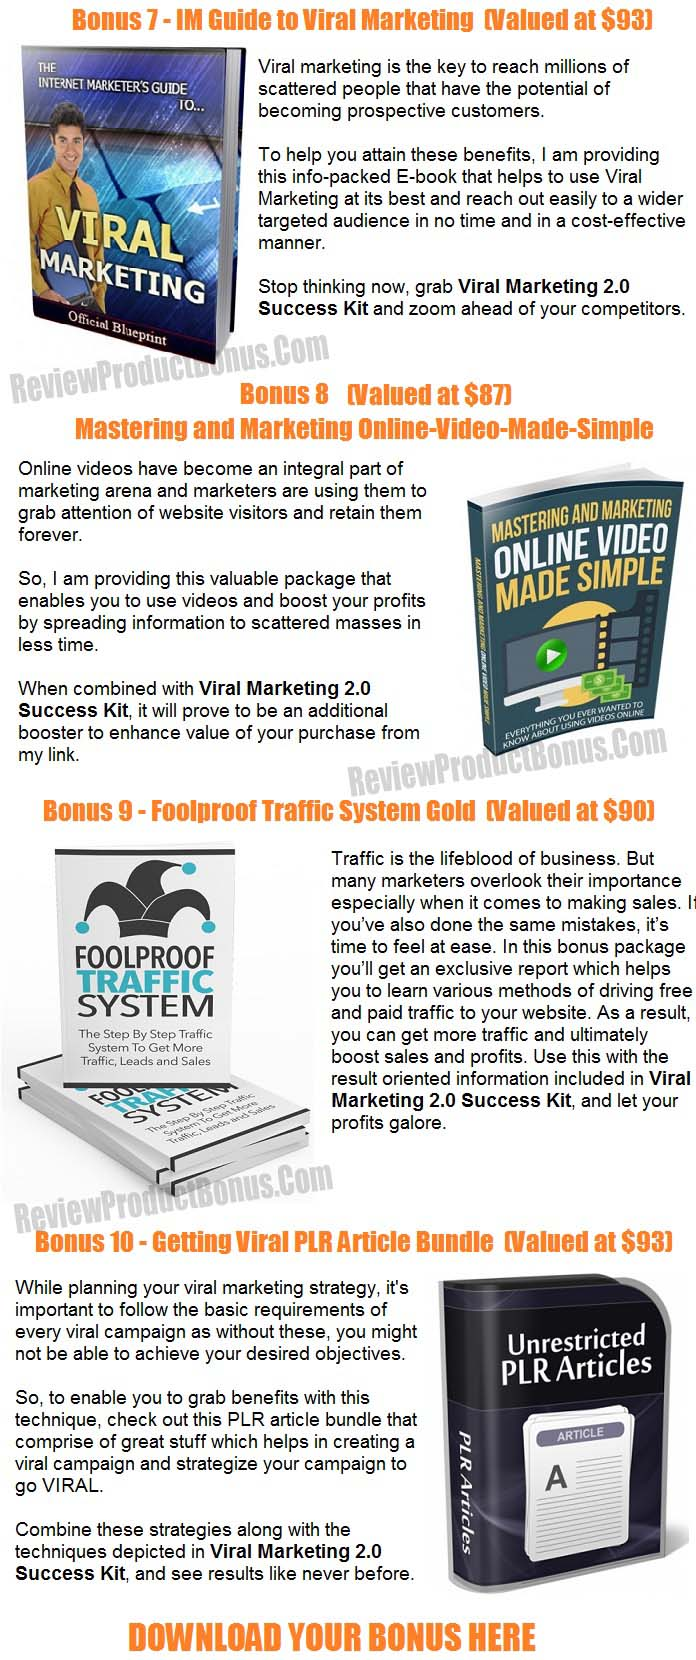 Viral Marketing 2.0 Bonuses